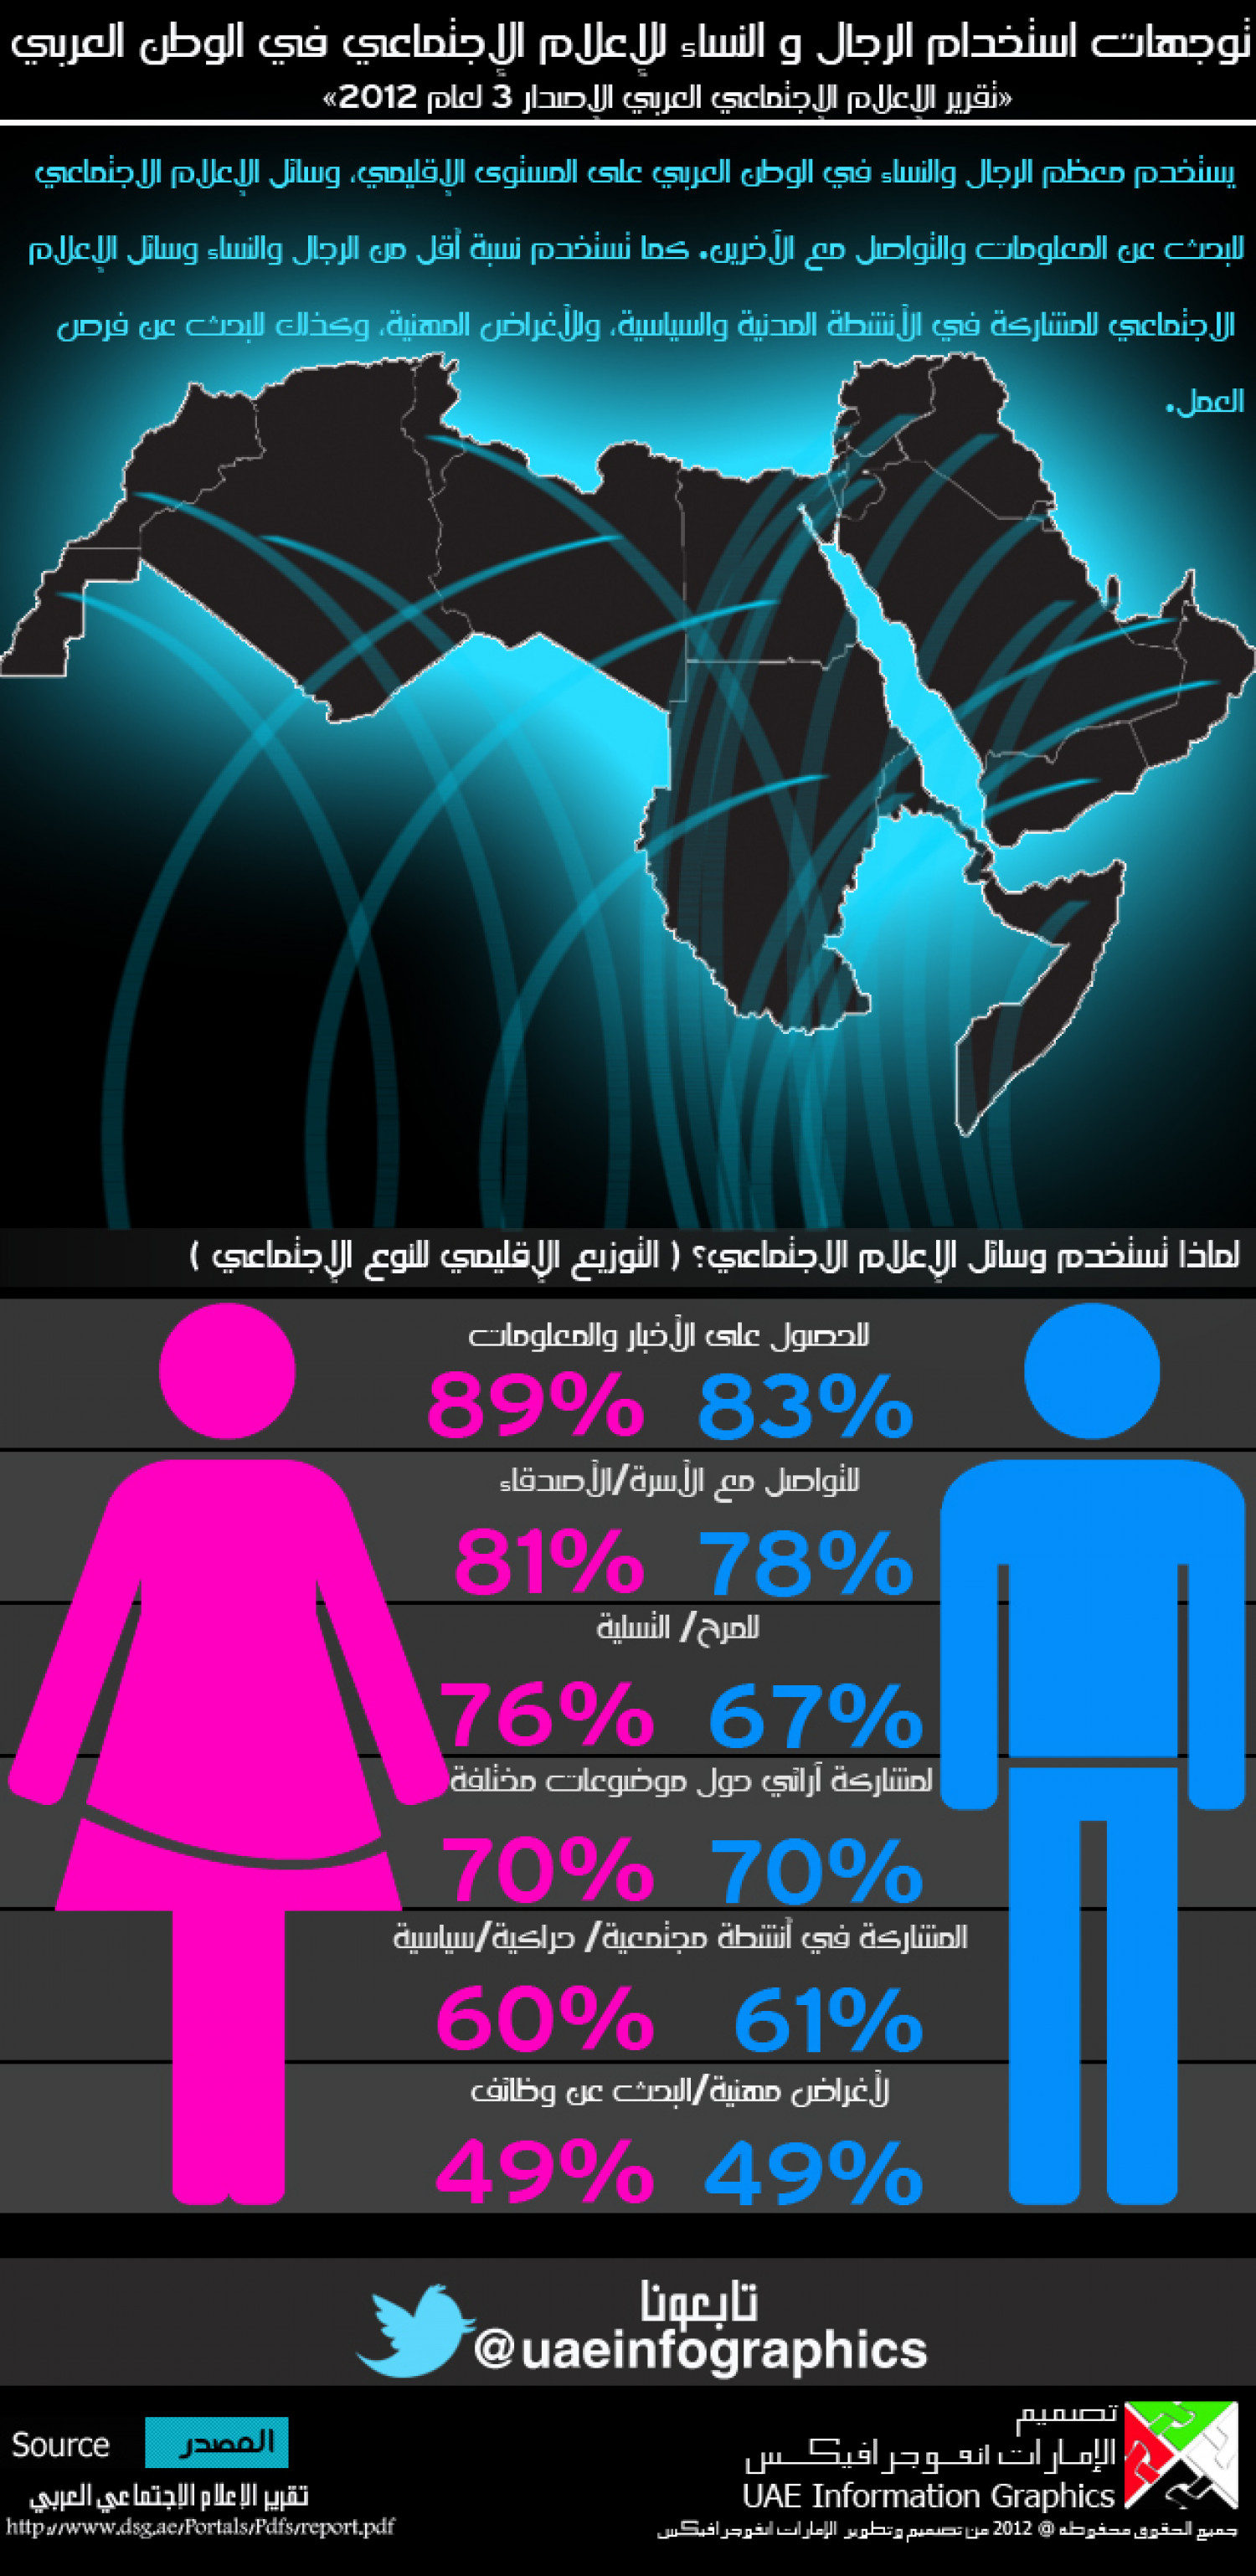 Social Media & the Arab World (By Regional gender breakdown) Infographic